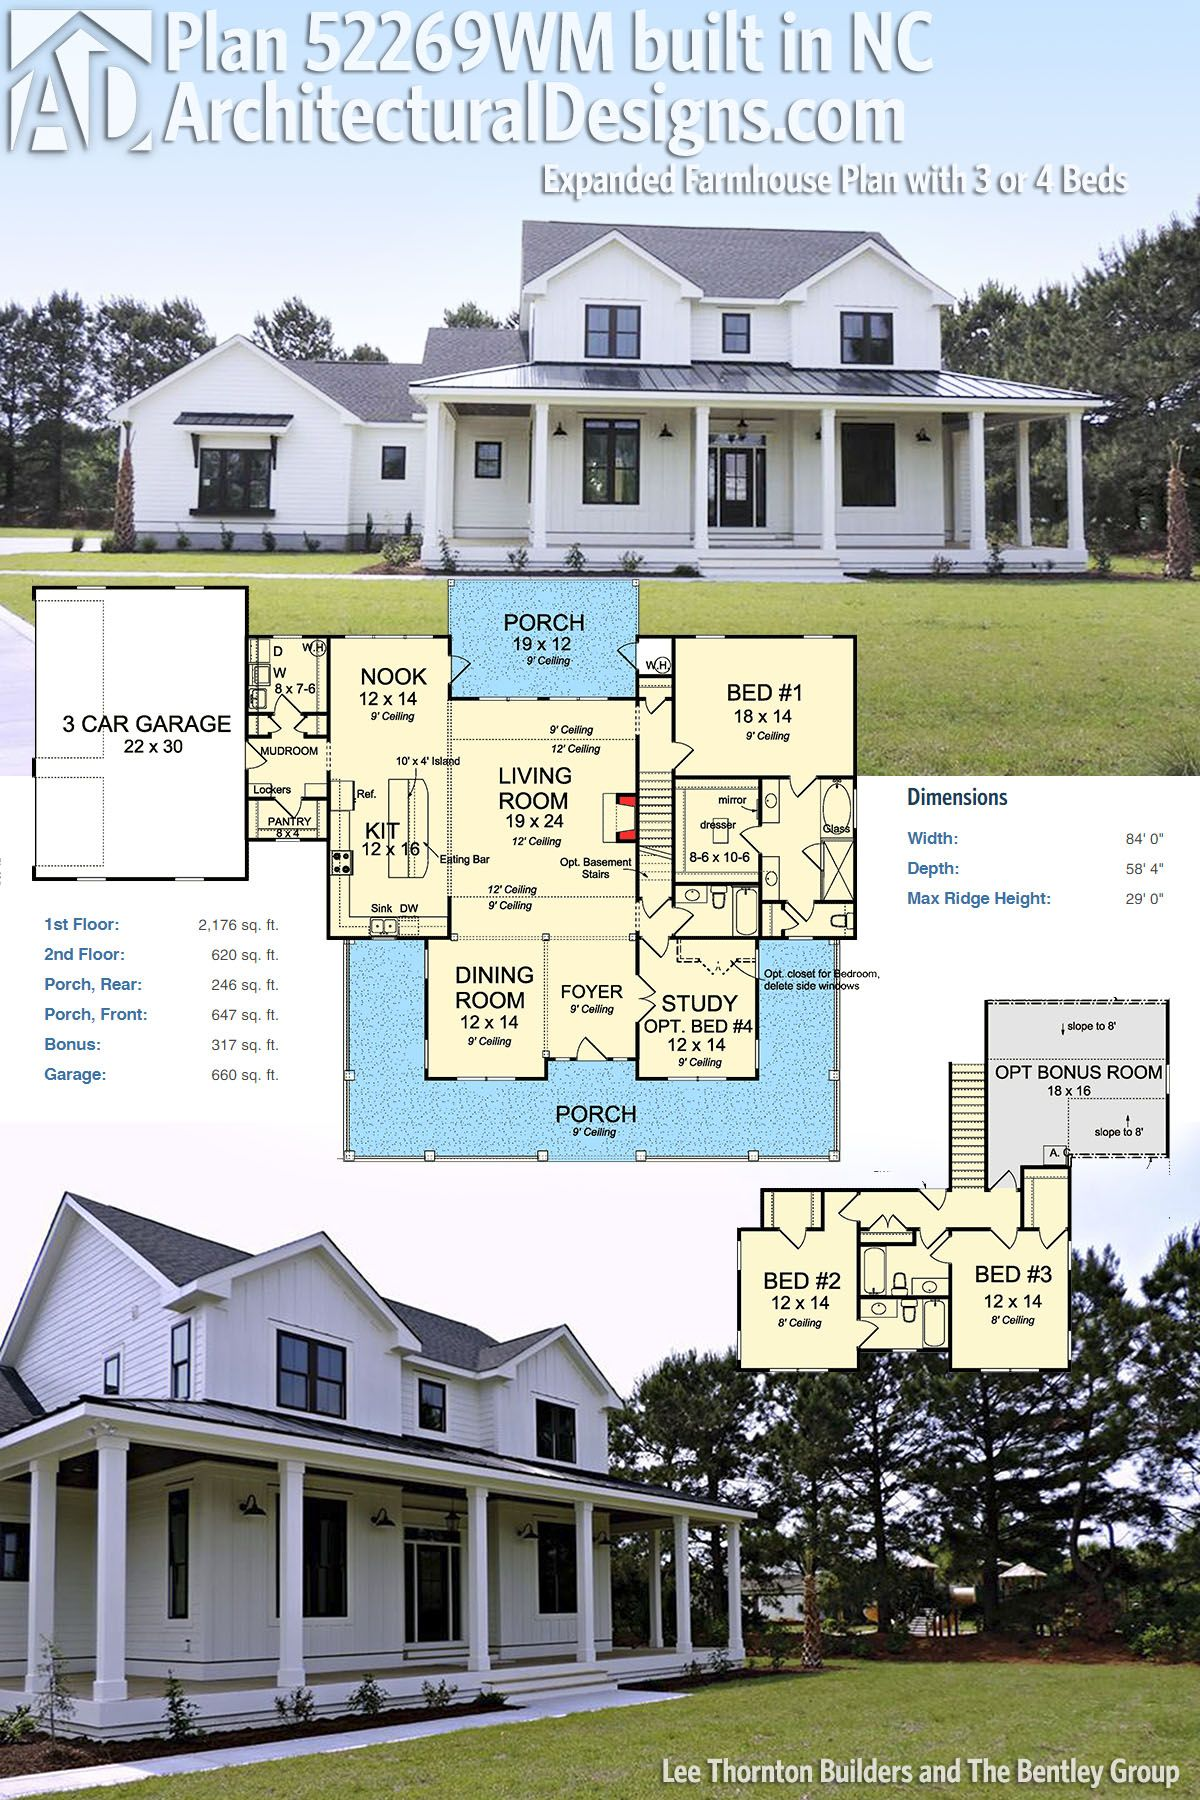 Superb Architectural Designs Modern Farmhouse Plan 52269WM Was Stunningly Built In  North Carolina By Our Client, Lee Thornton Builders, For The Bentley Group. Amazing Design